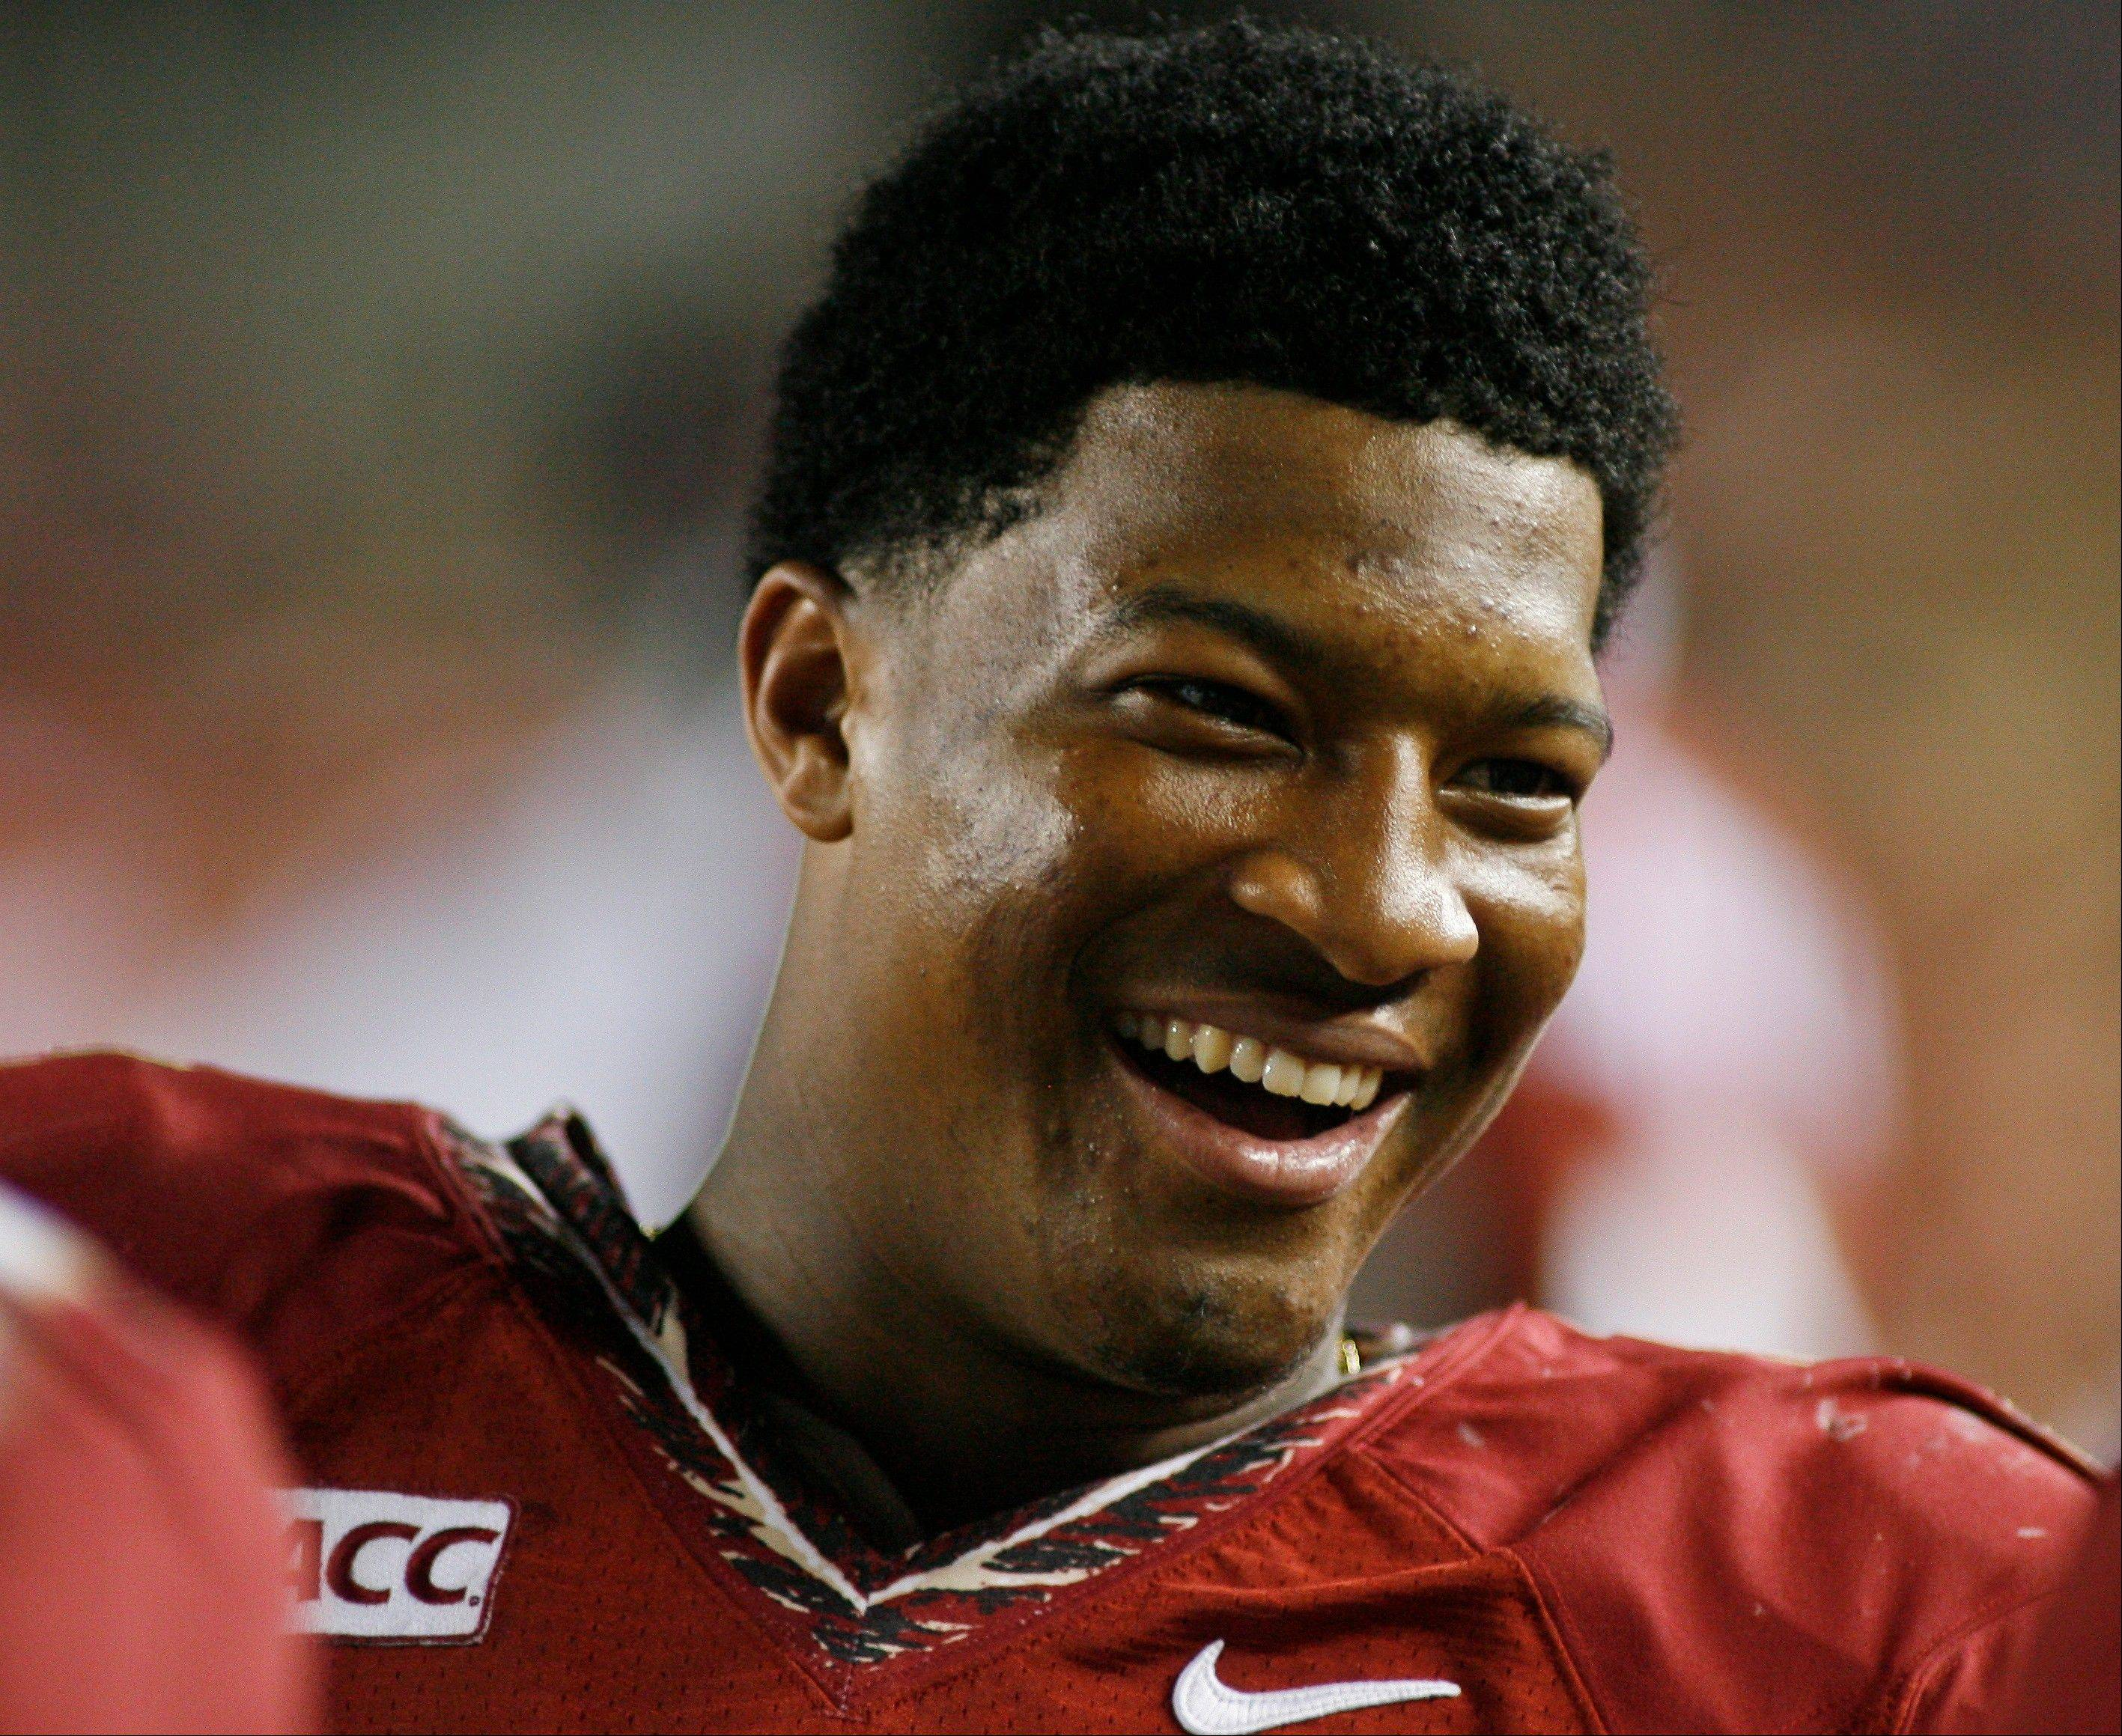 Florida State quarterback Jameis Winston on the sidelines during the game against Syracuse Saturday in Tallahassee.